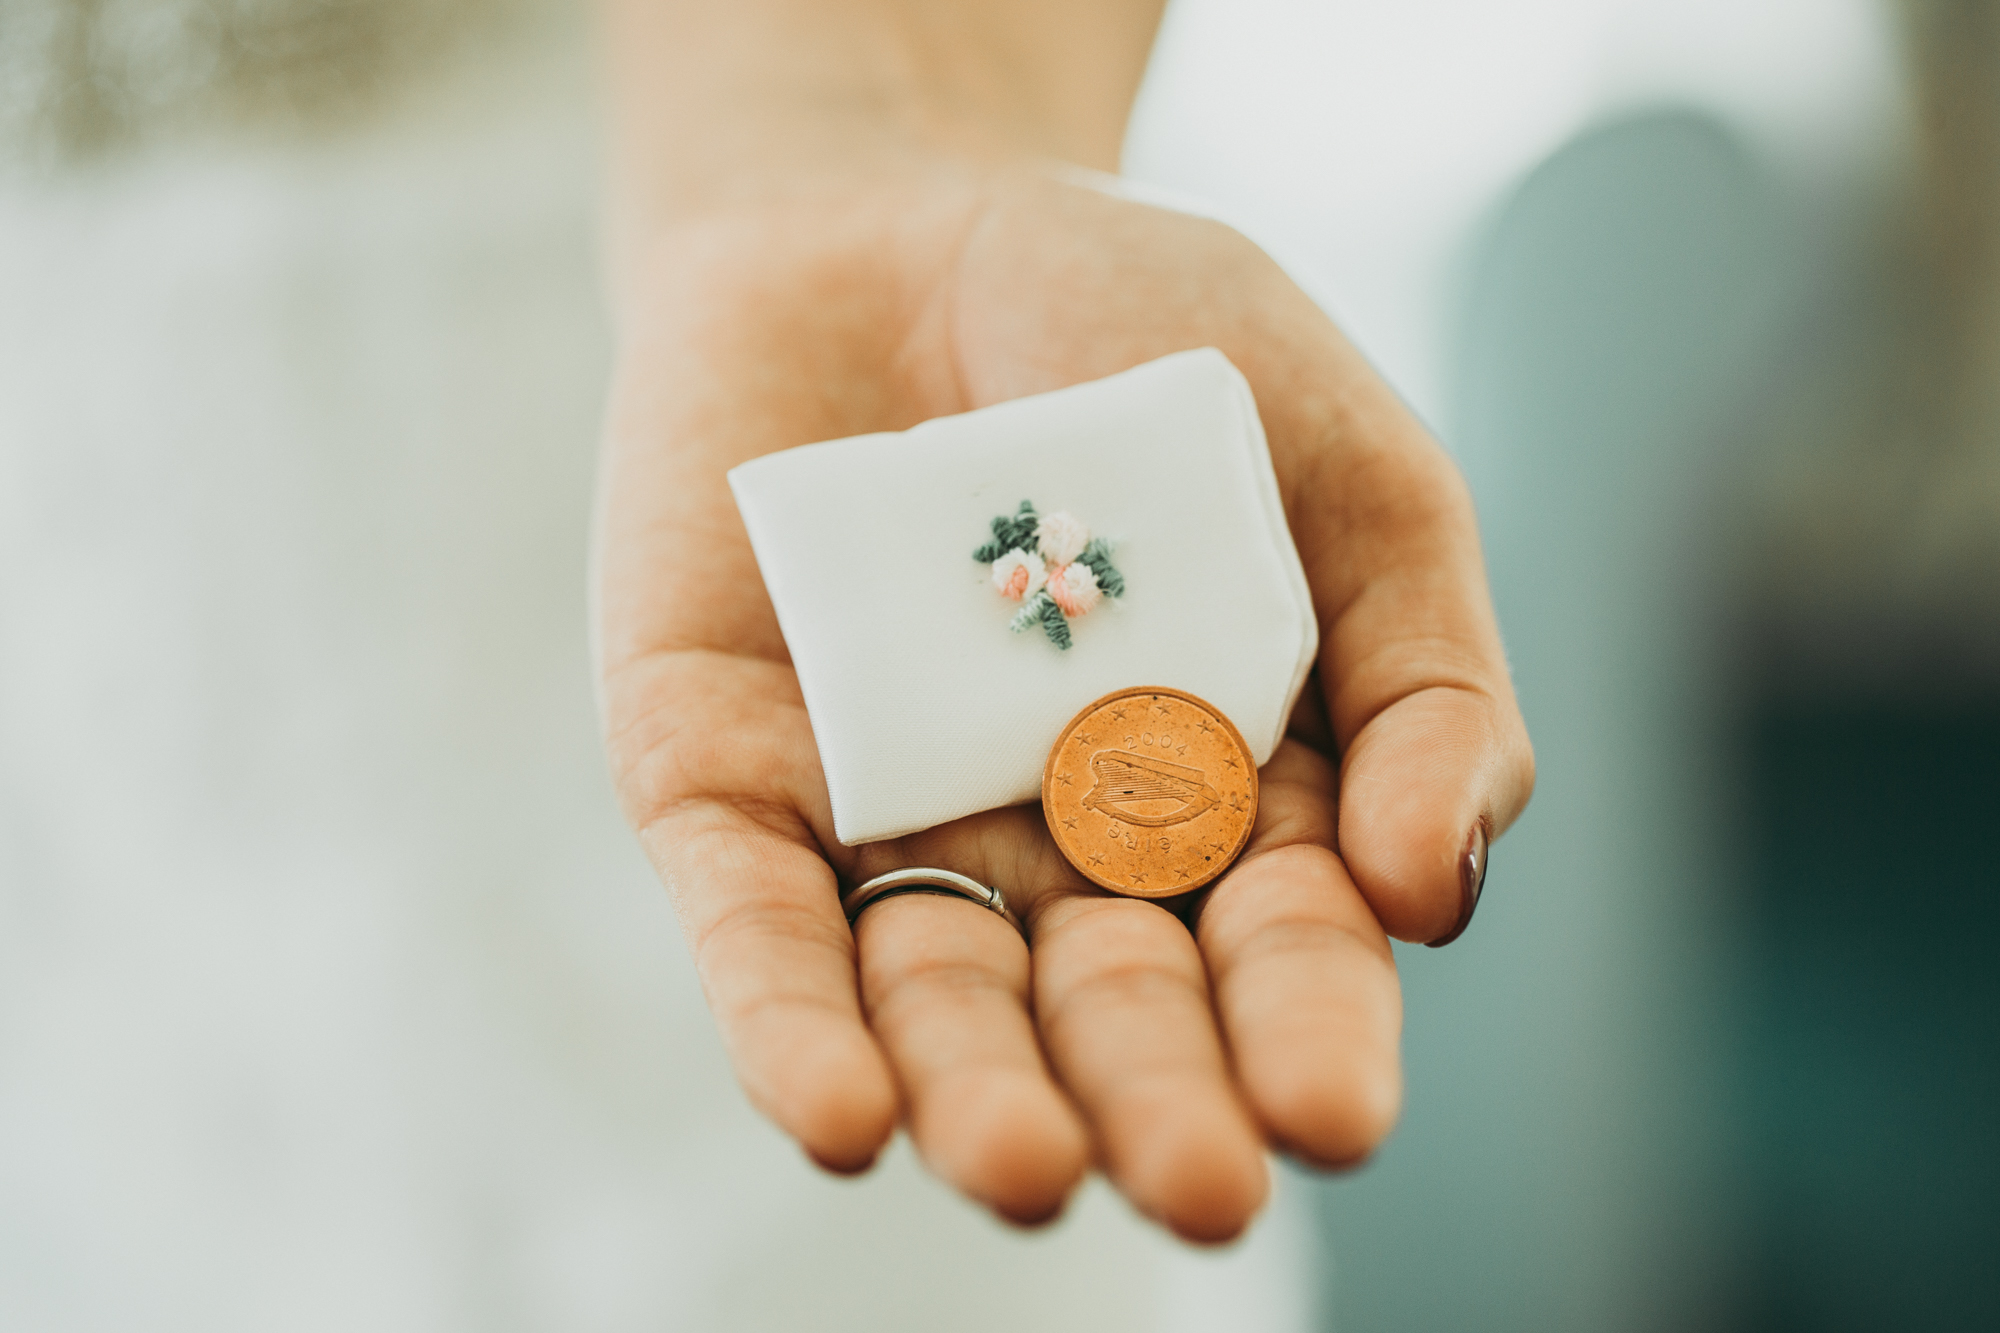 Hand with a ring holding a penny and a pouch with a flower embroidered detail.